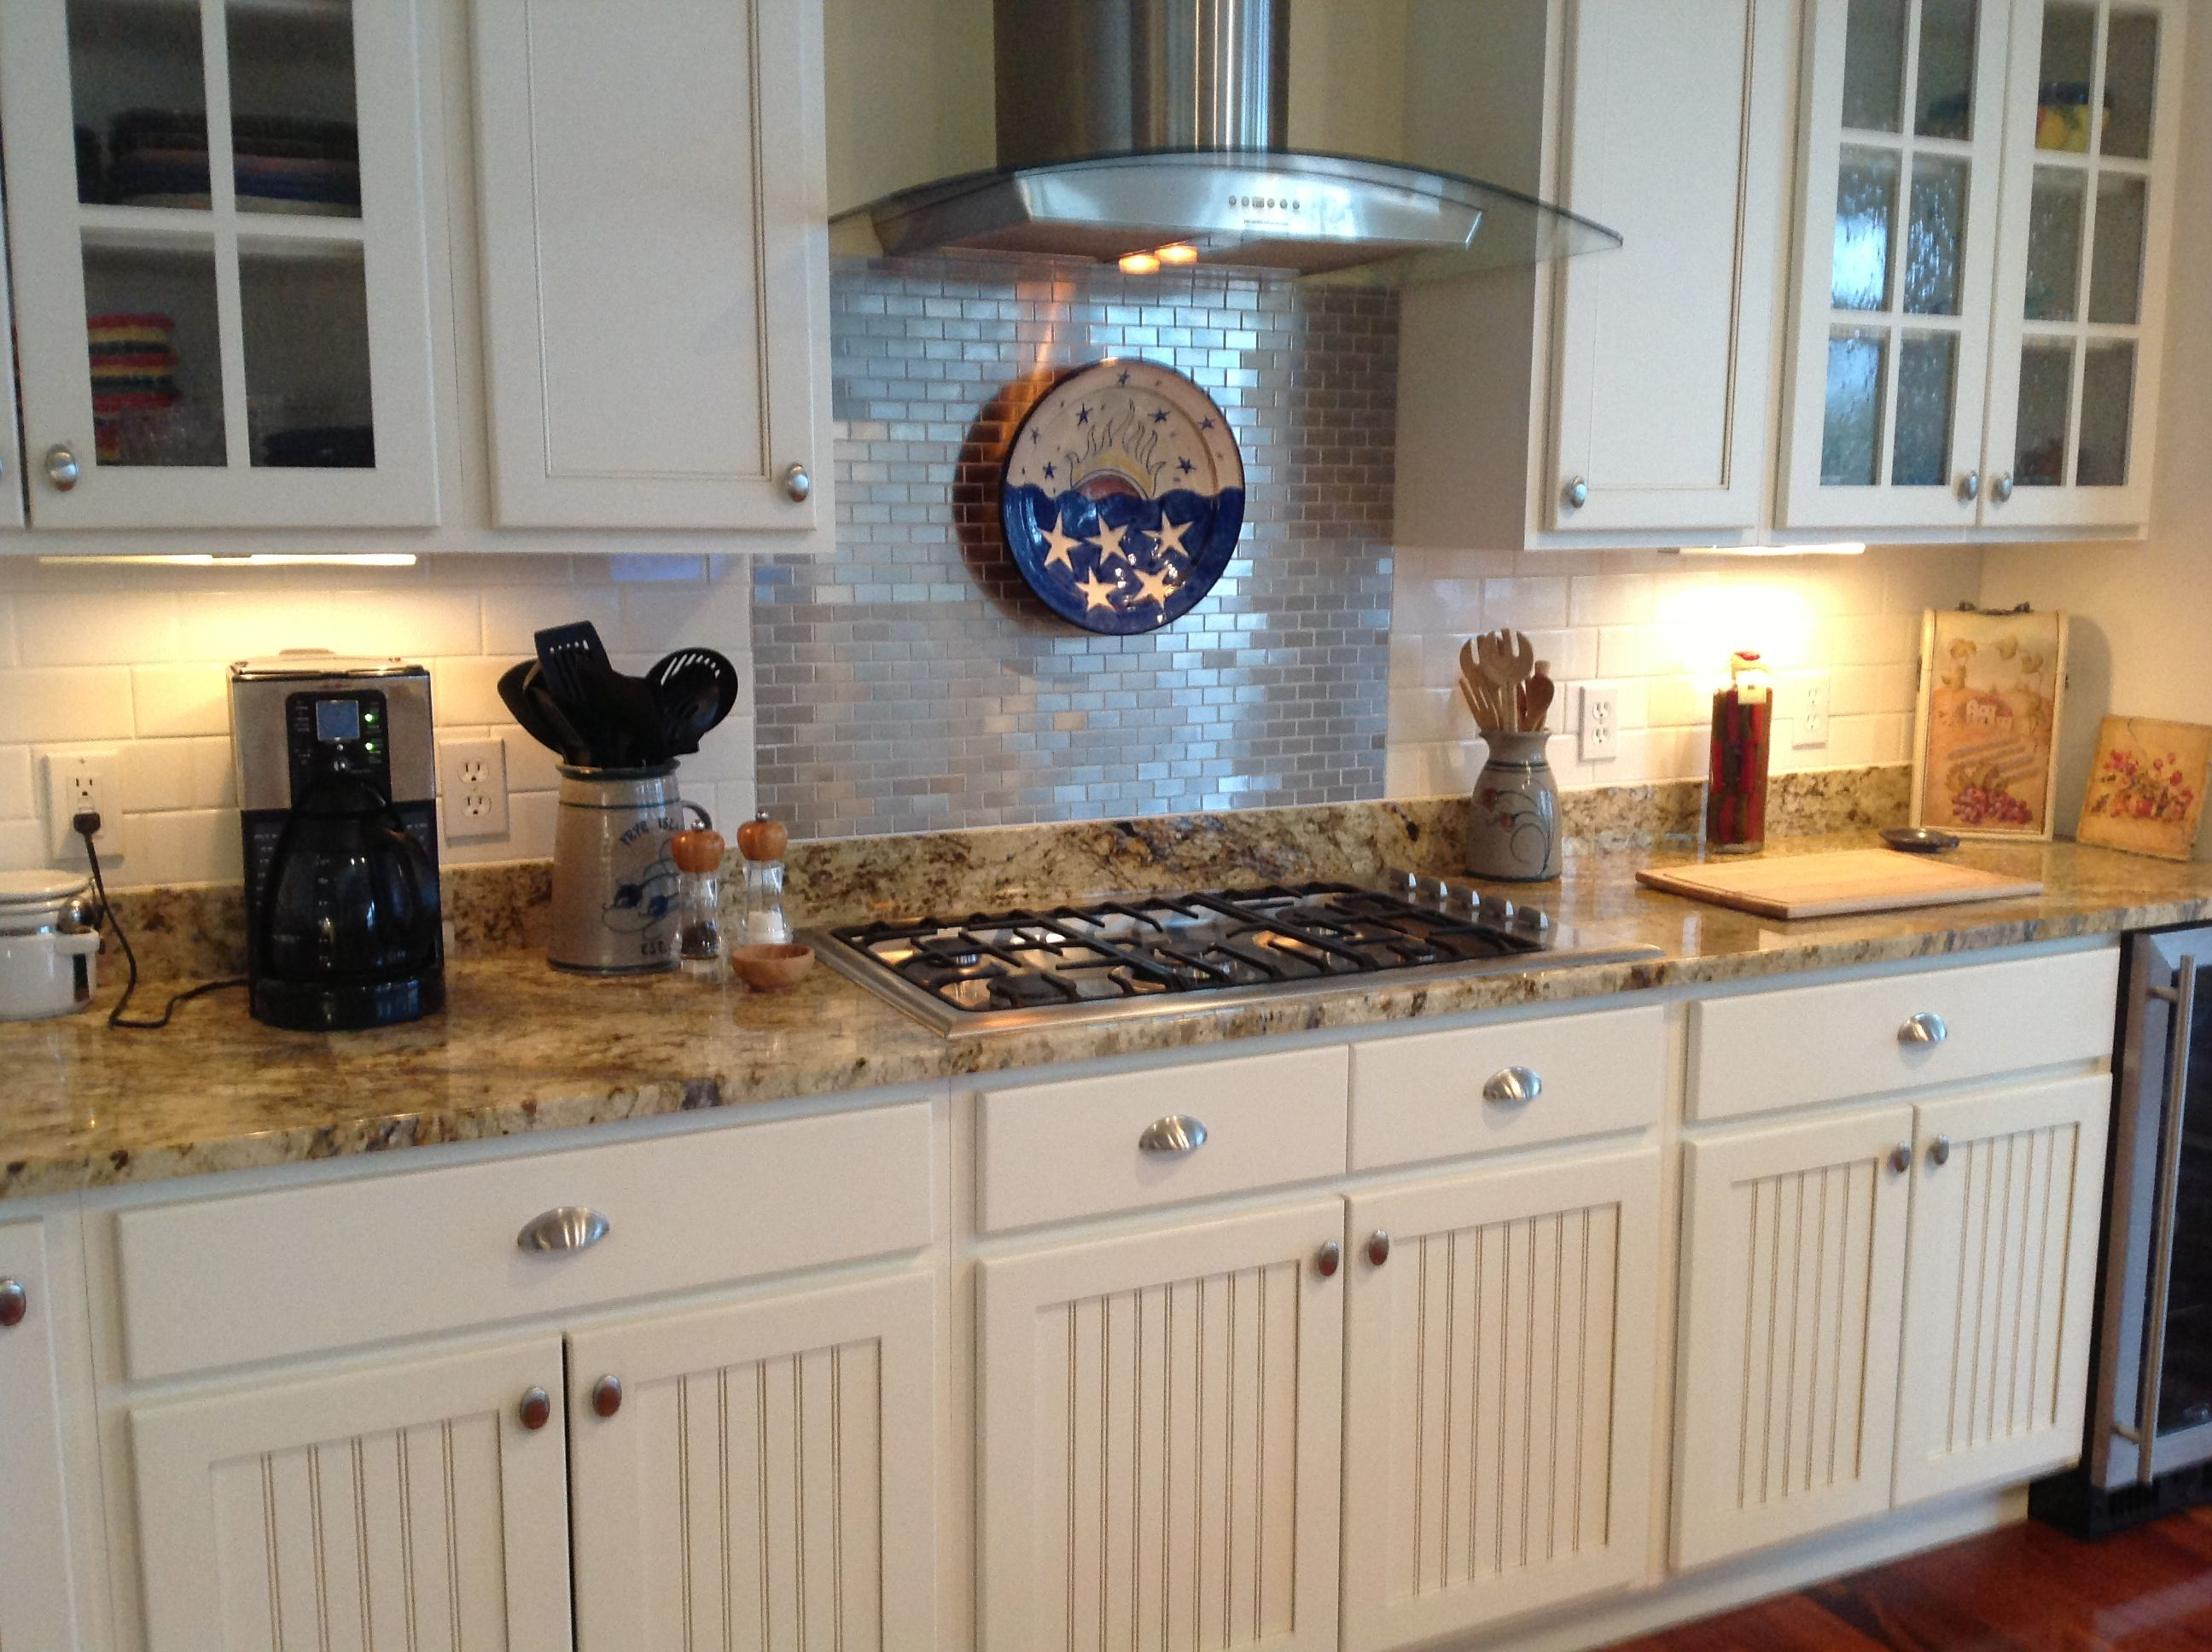 talavera tile kitchen backsplash google search - Backsplash Tile Ideas